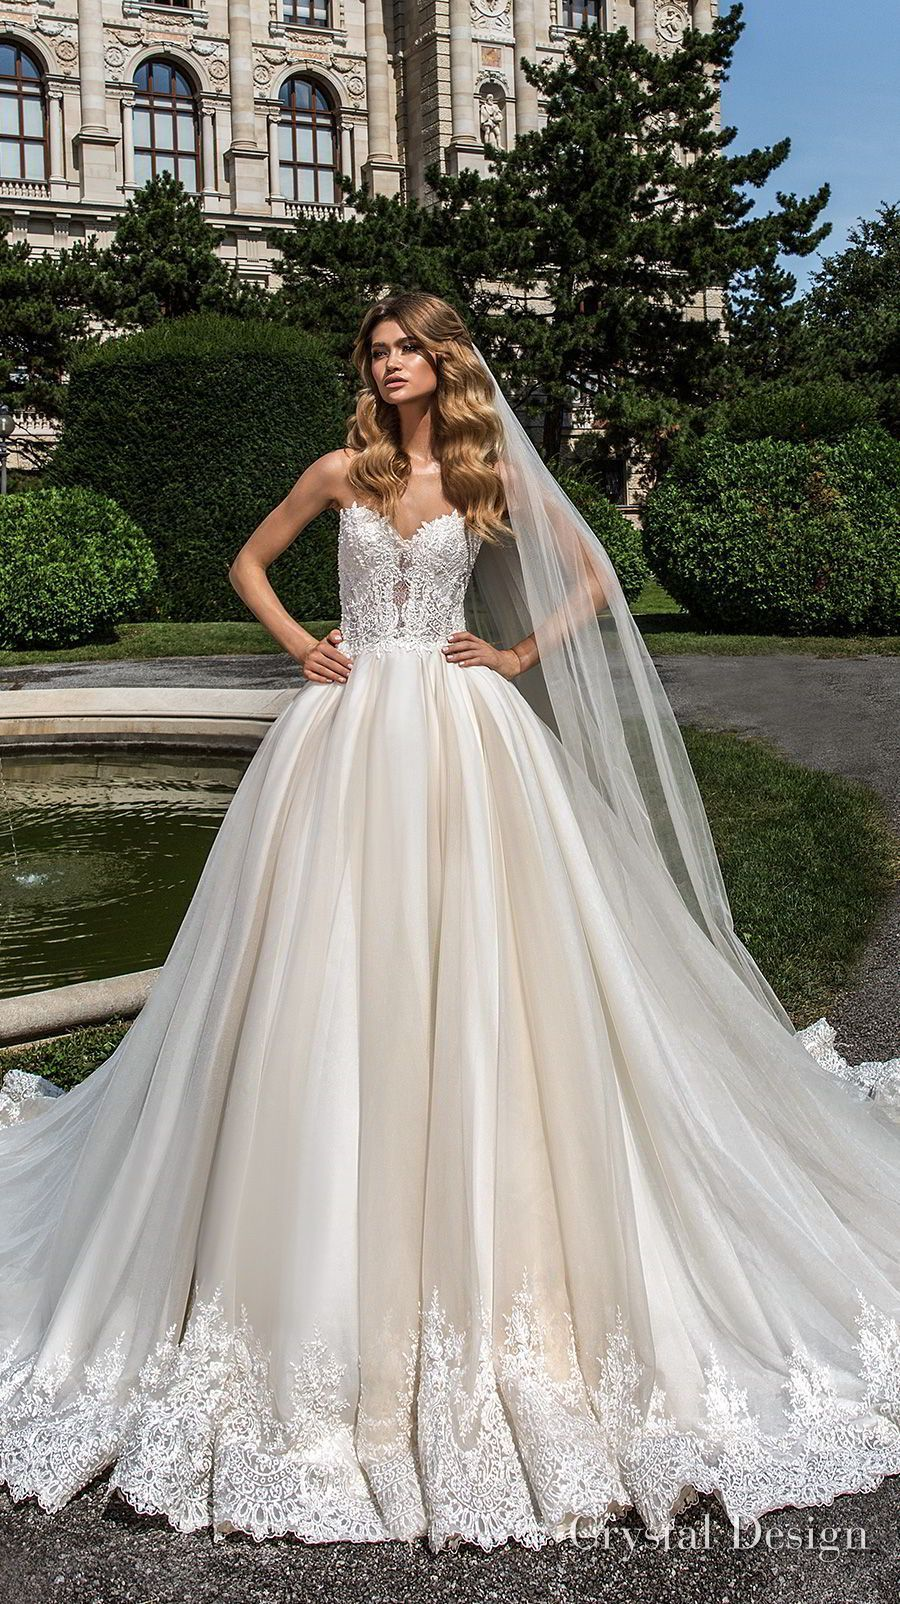 Fairytale ball gown wedding dresses  crystal design  strapless sweetheart neckline heavily